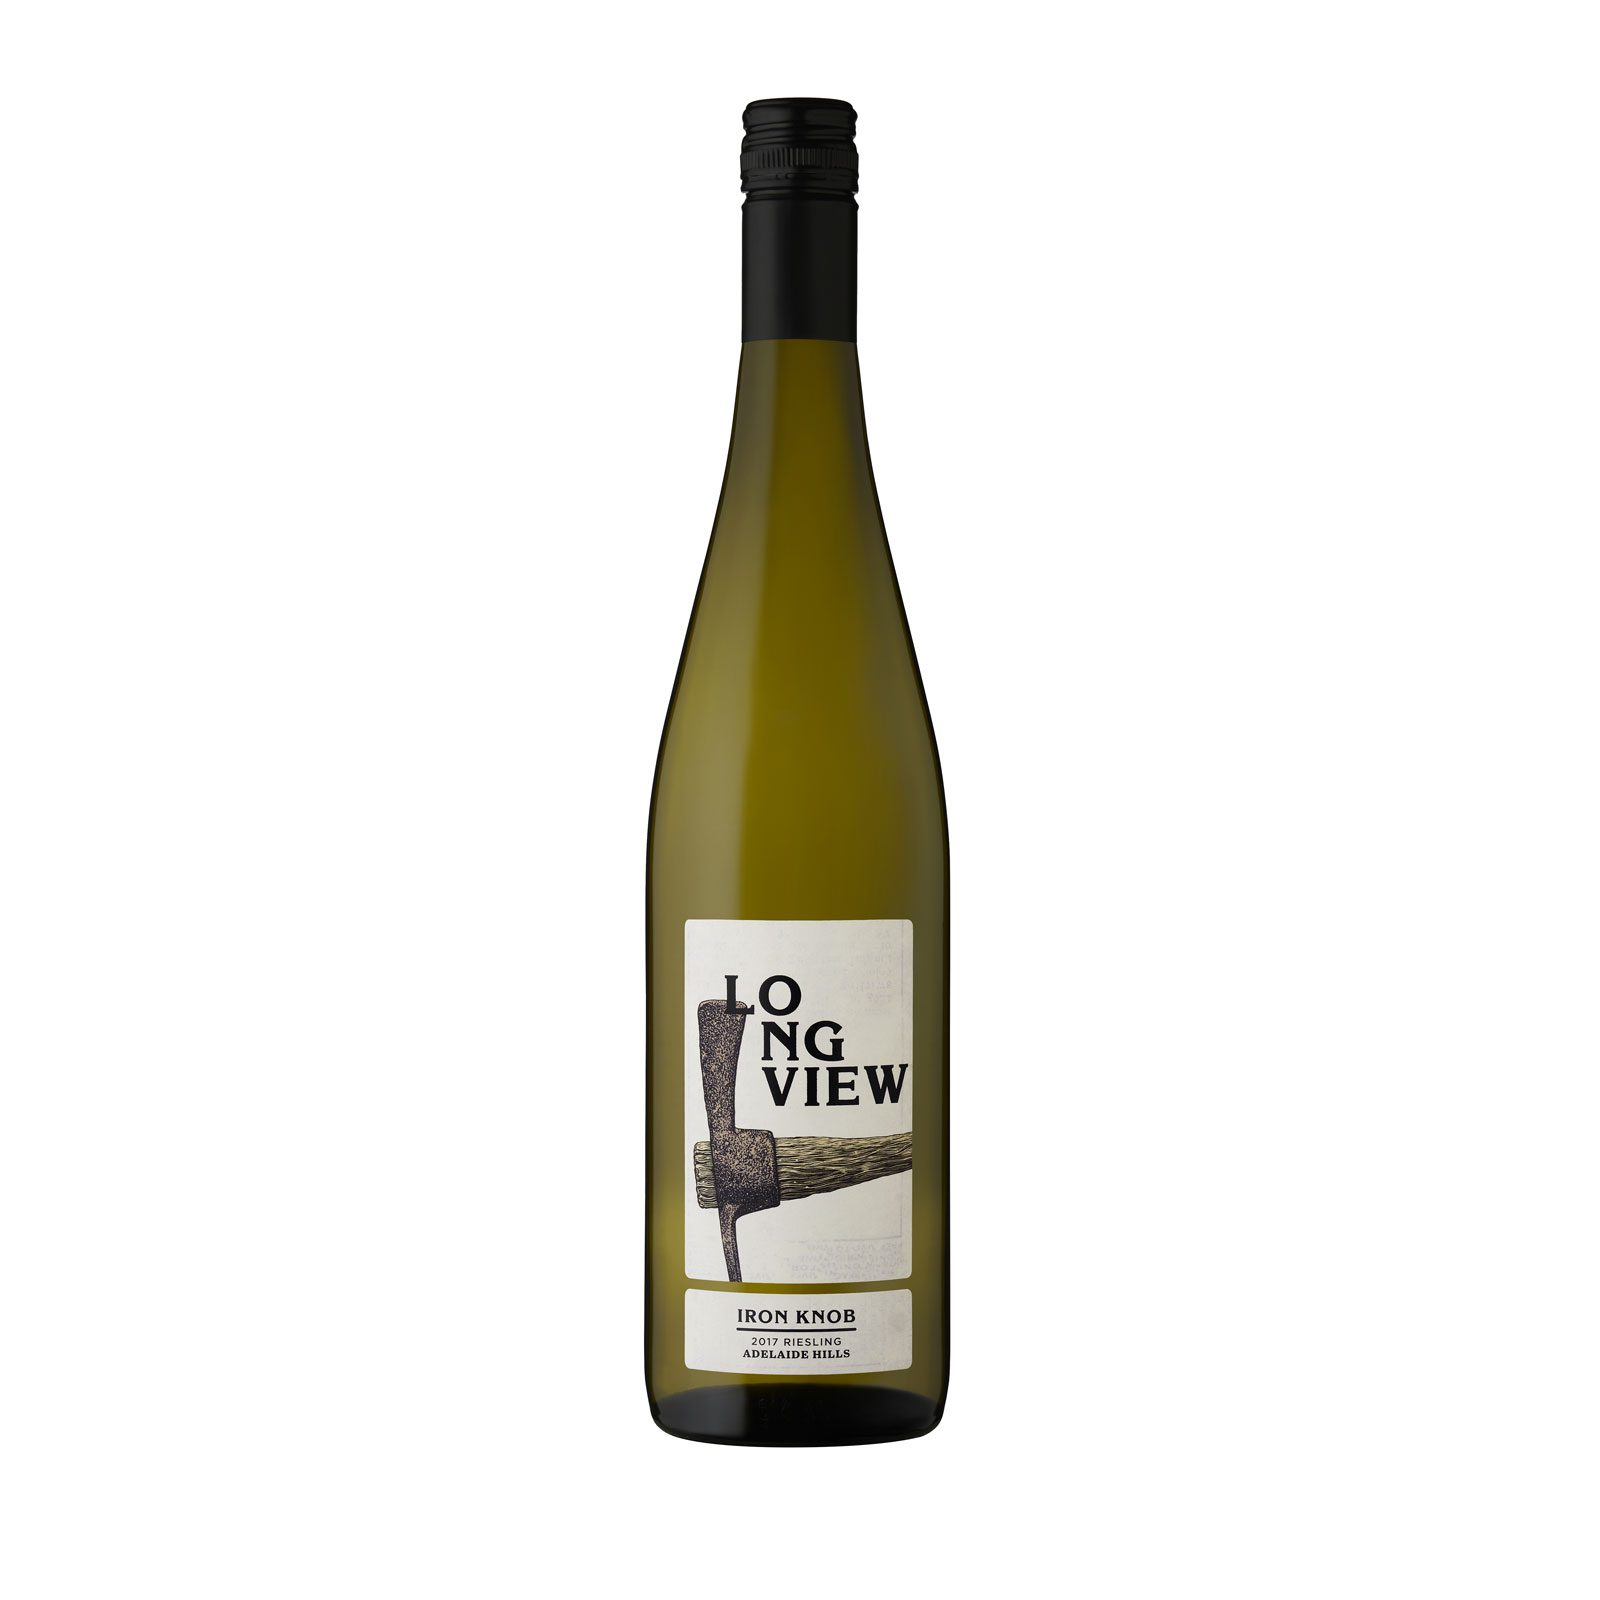 products-longview-iron-knob-riesling-a